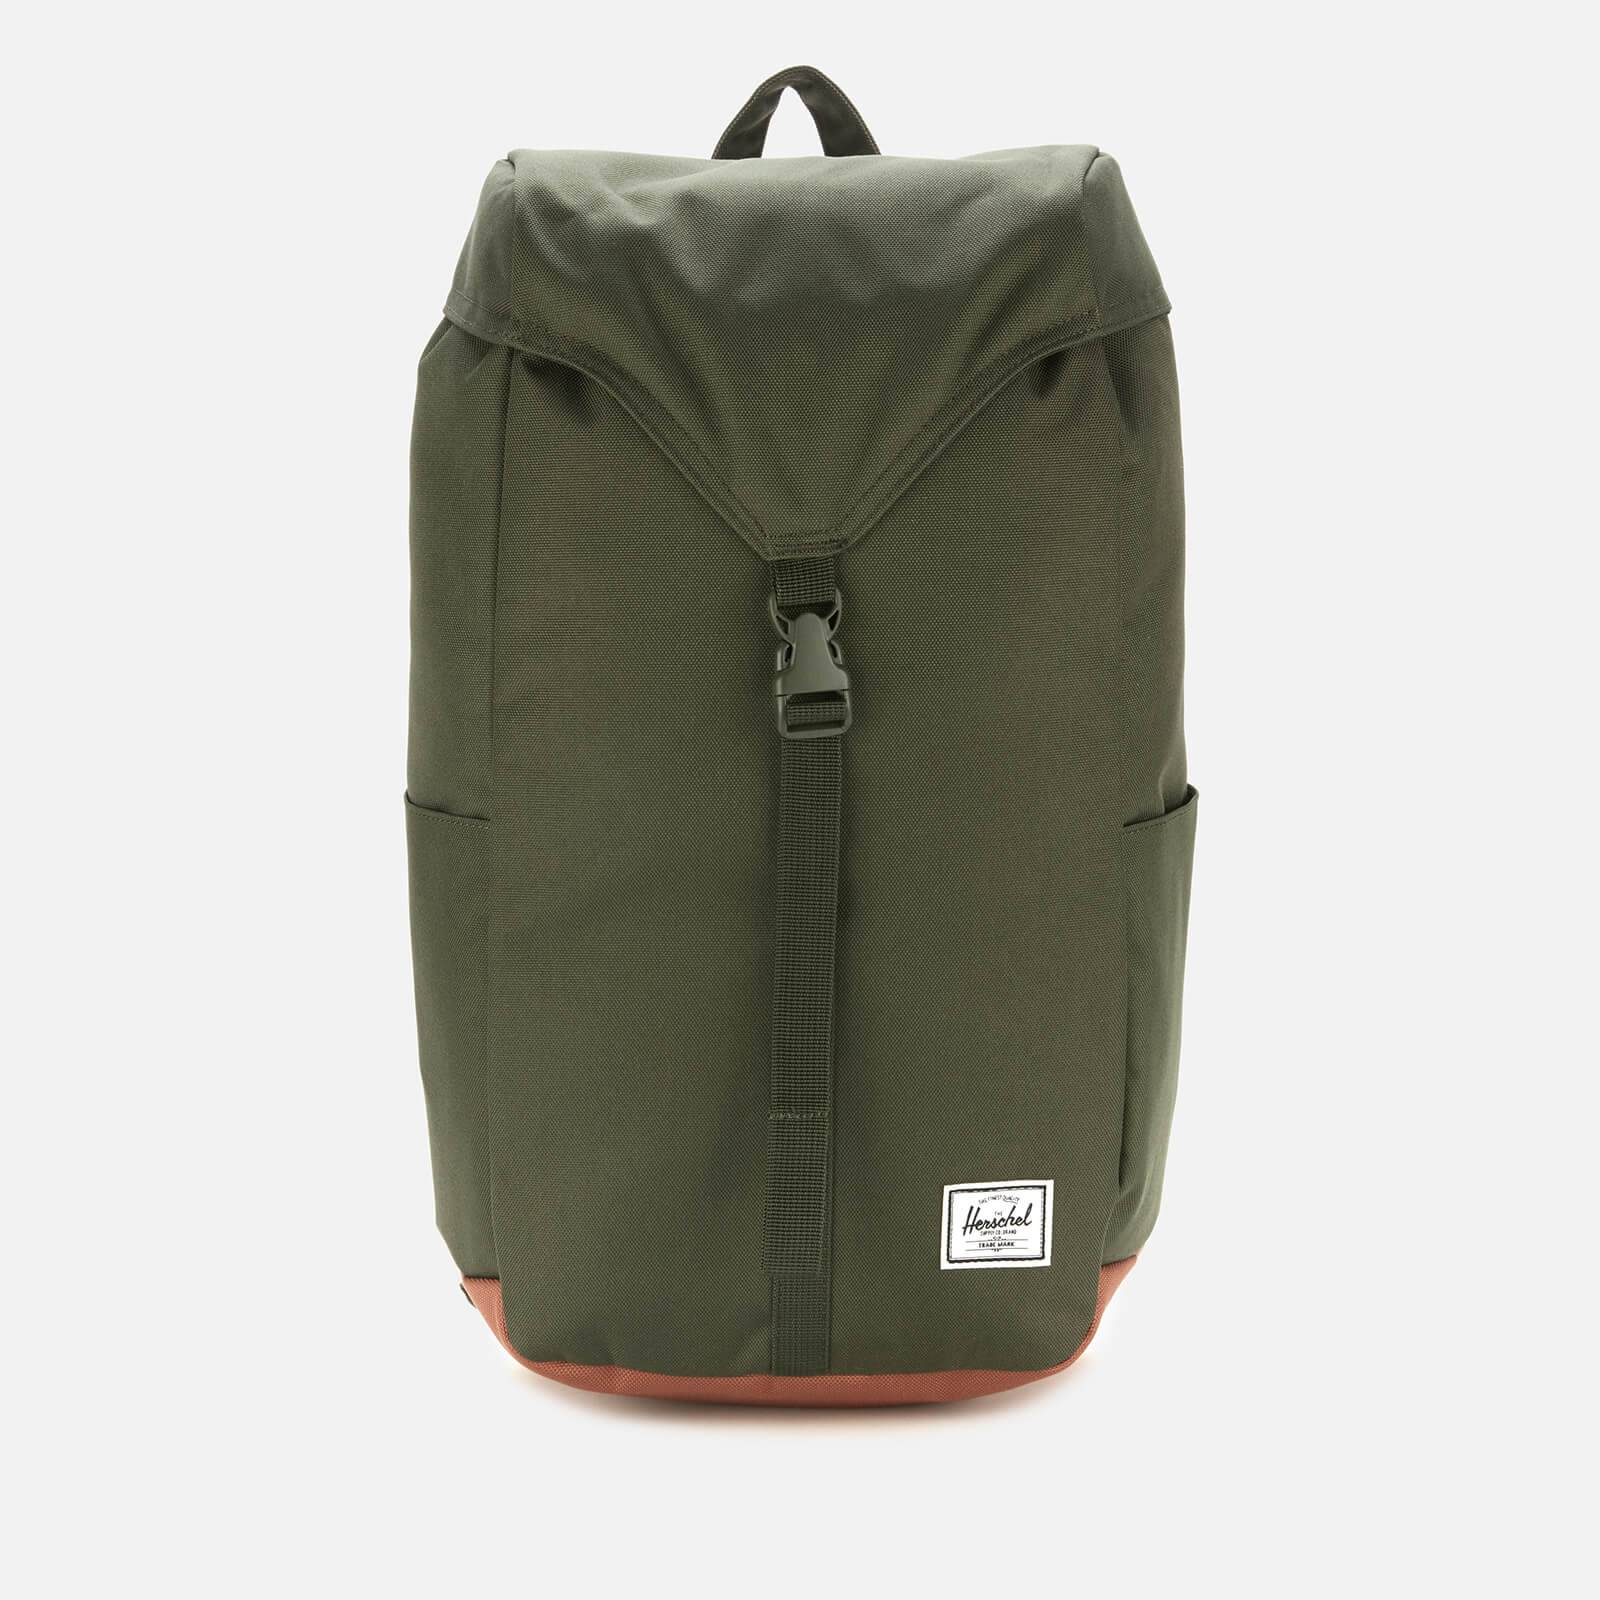 Herschel Supply Co. Men's Thompson Back Pack - Dark Olive/Saddle Brown